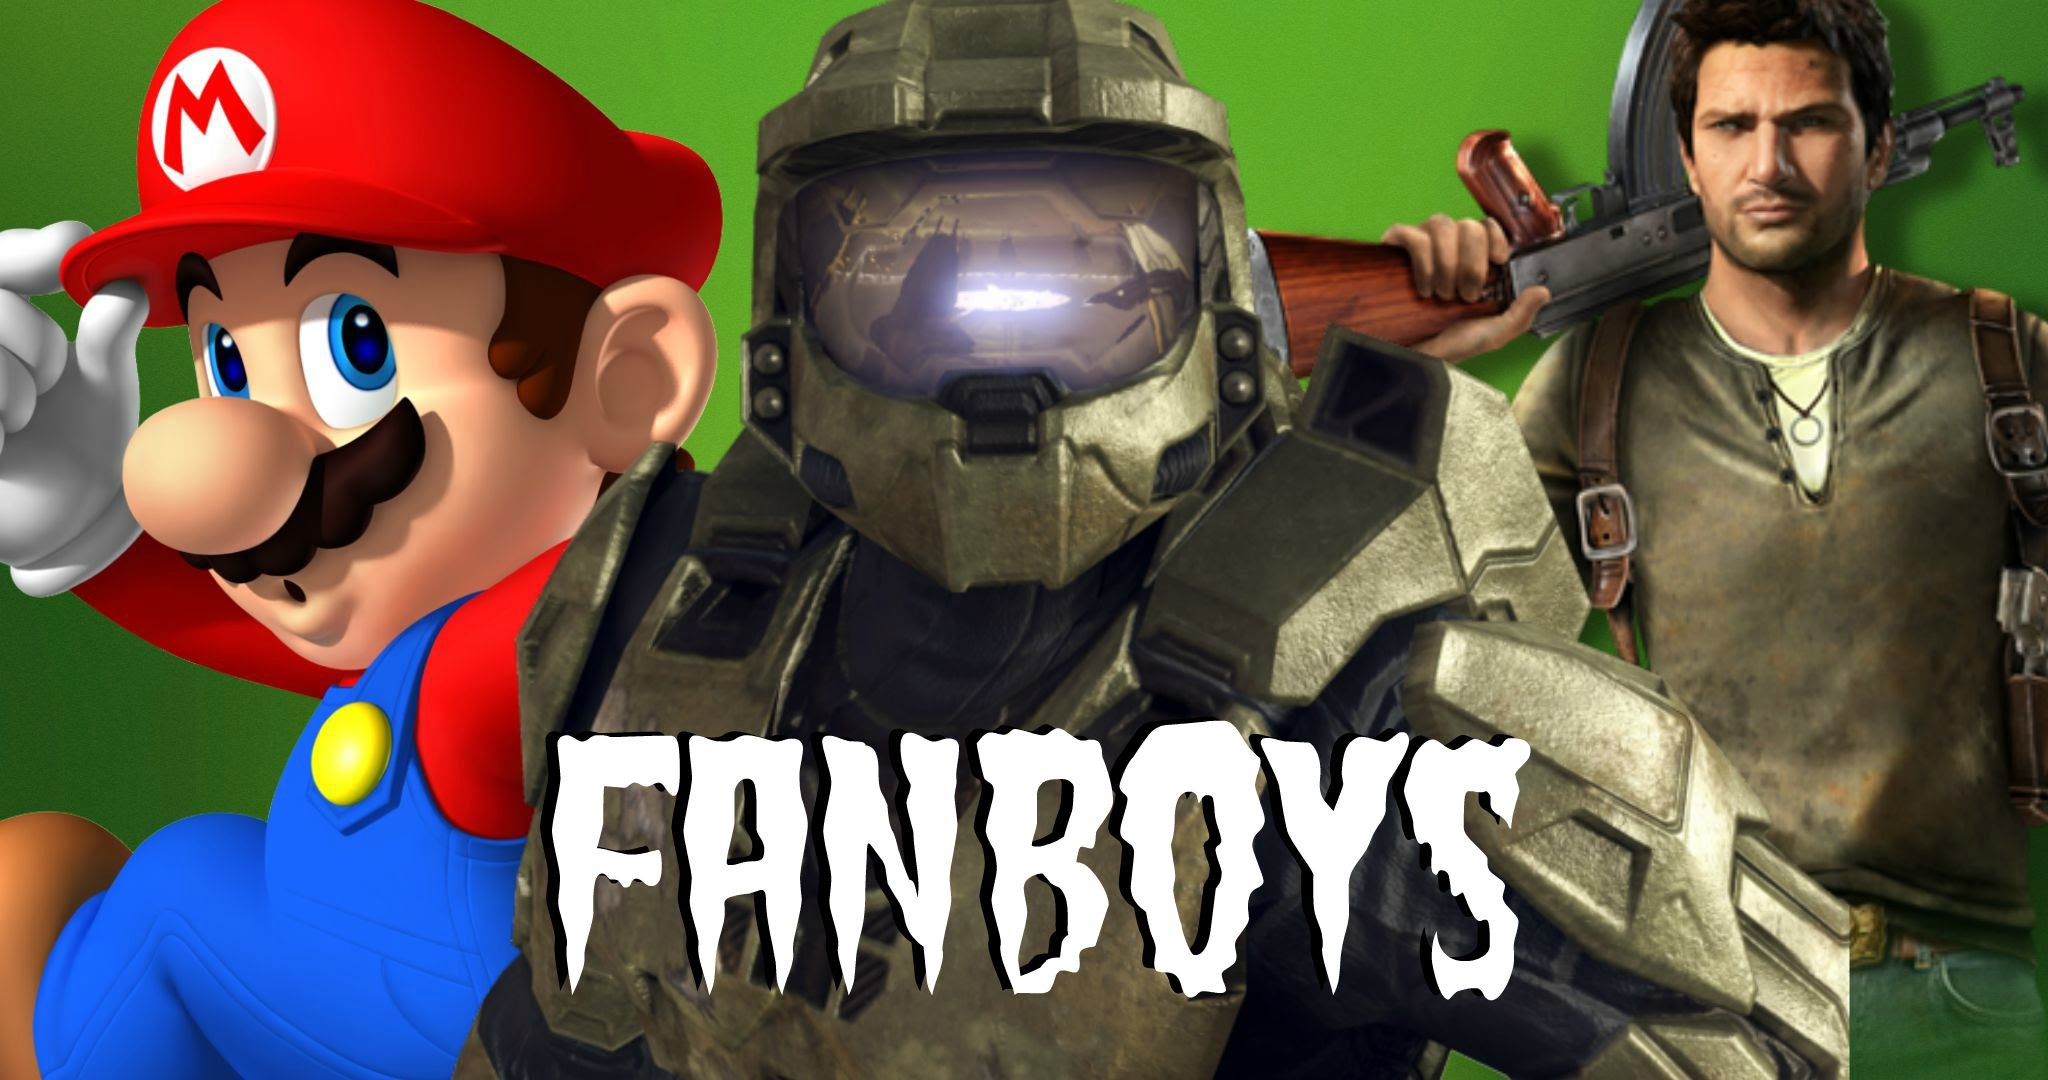 Fanboys - This week we explain everything you need to know about fanboys. From what they are, to some examples we have personally come across, to what we believe could make them the way they are. Then we give a bit of advice.